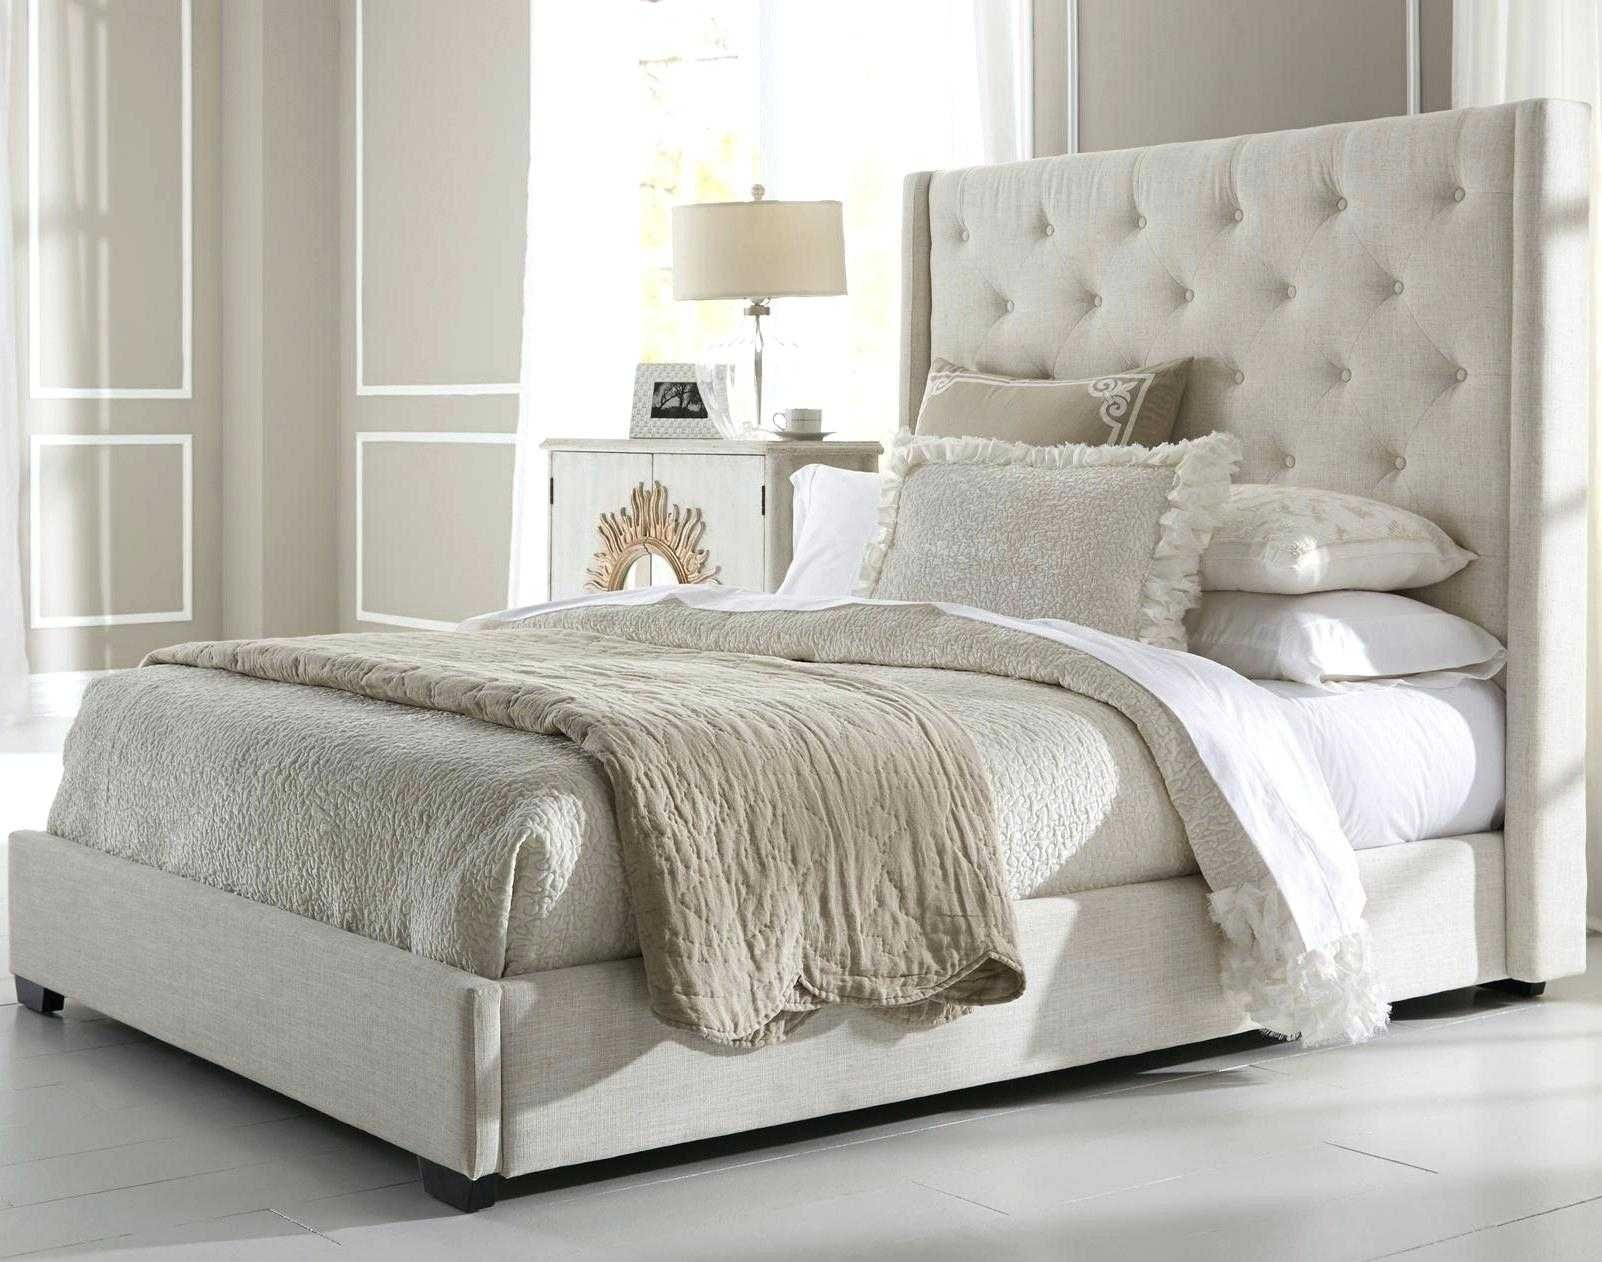 Gallery Of Sleep Number Bed Headboard Ideas And Impressive Headboards